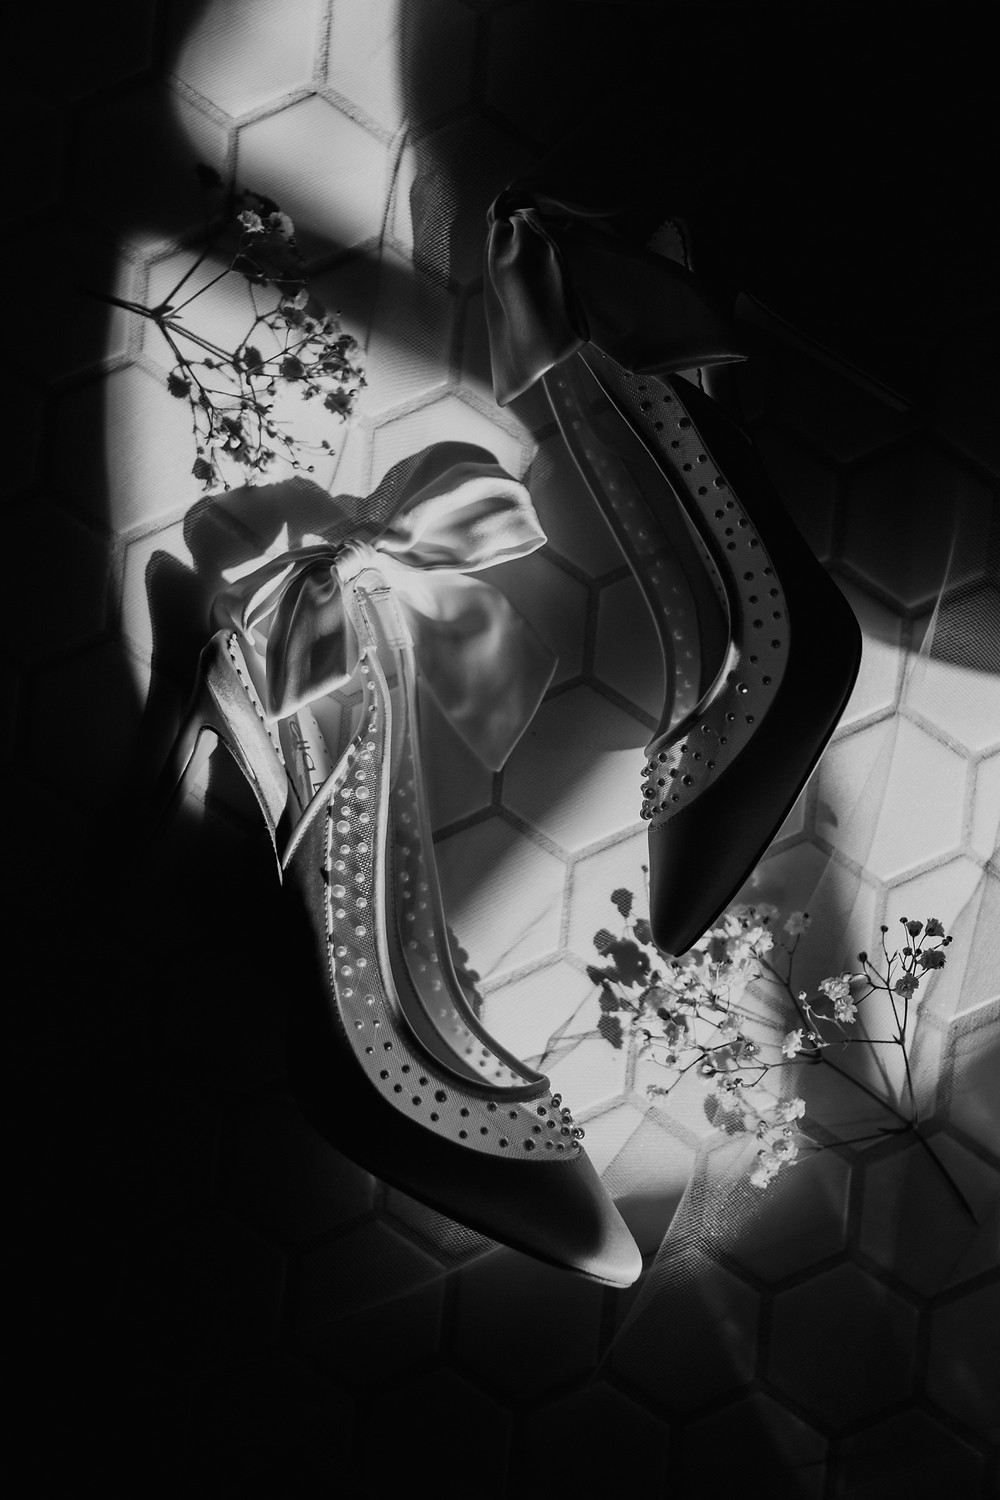 Wedding details and shoes. Photographed by Nicole Leanne Photography.